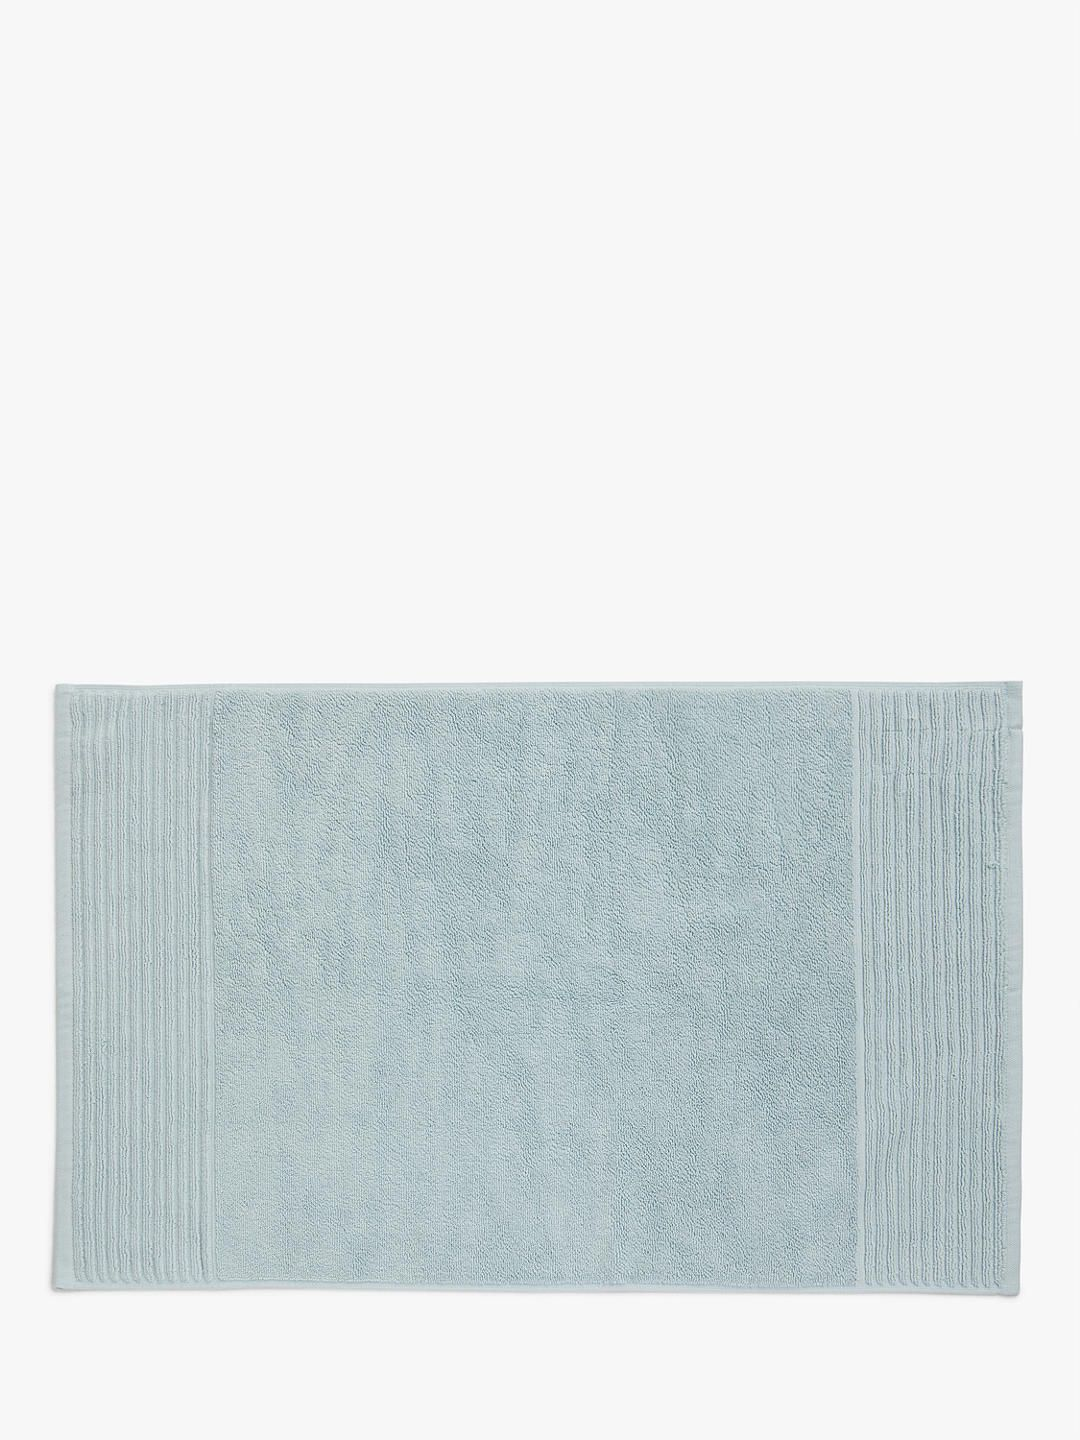 John Lewis Partners Egyptian Cotton Bath Mat Pale Cassis Egyptian Cotton Towels Egyptian Cotton Bath Linens